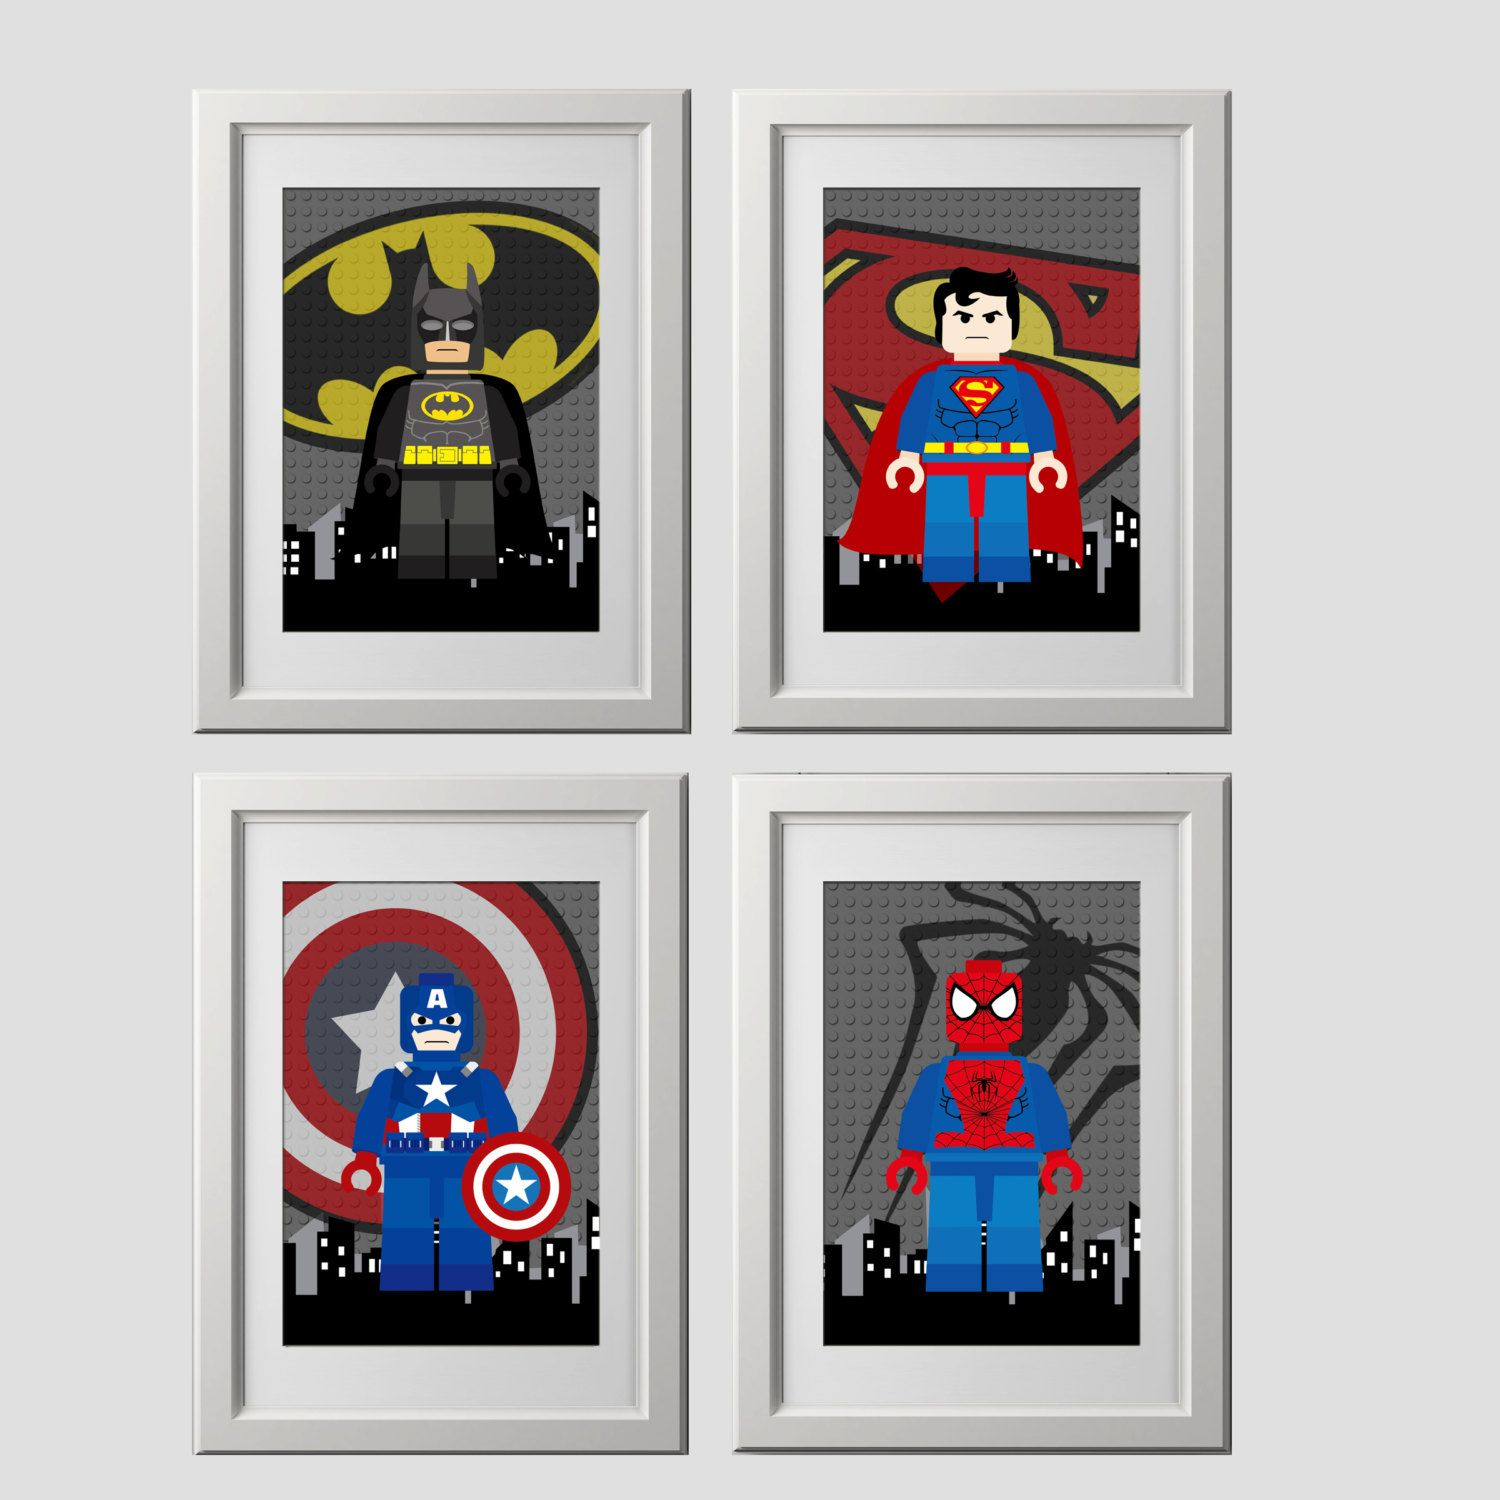 Lego Superhero Wall Art Prints Batman By AmysDesignShoppe On Etsy - Lego superhero wall decals